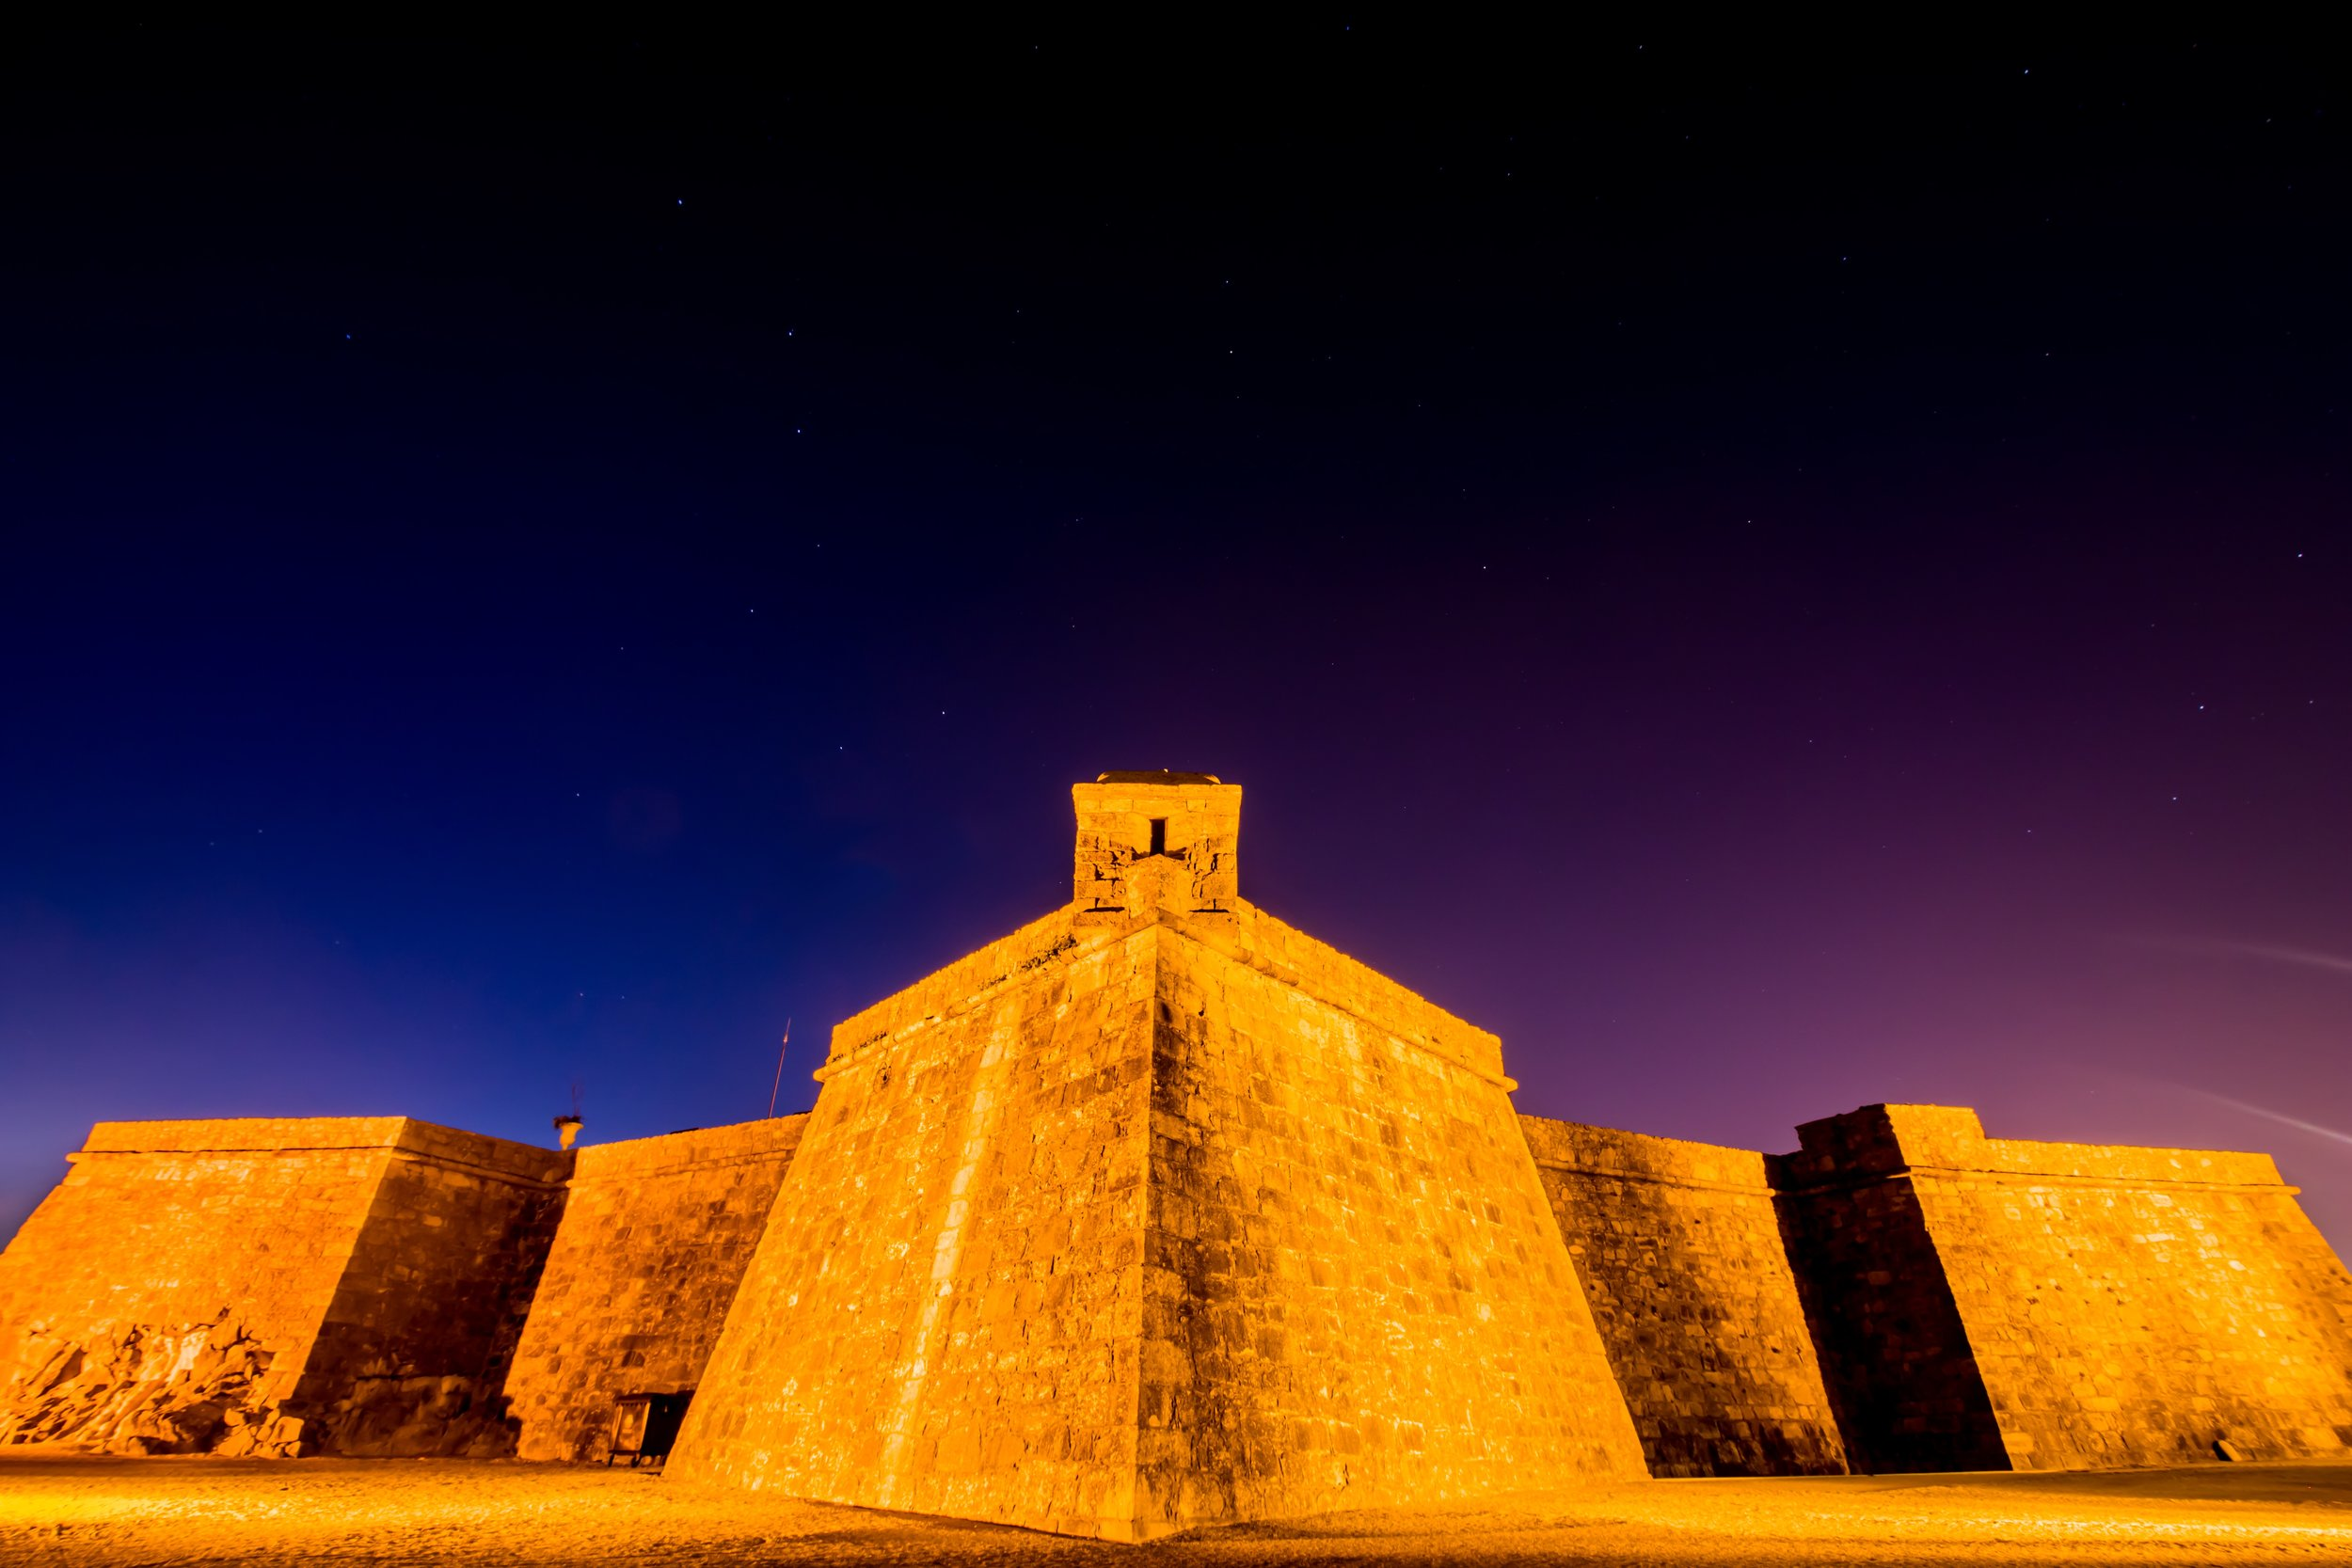 2. A Fort Night  Fort São João, situated where the mouth of the river meets the ocean, was built to protect the city from sea invaders. It is named after the city's patron saint, John the Baptist.